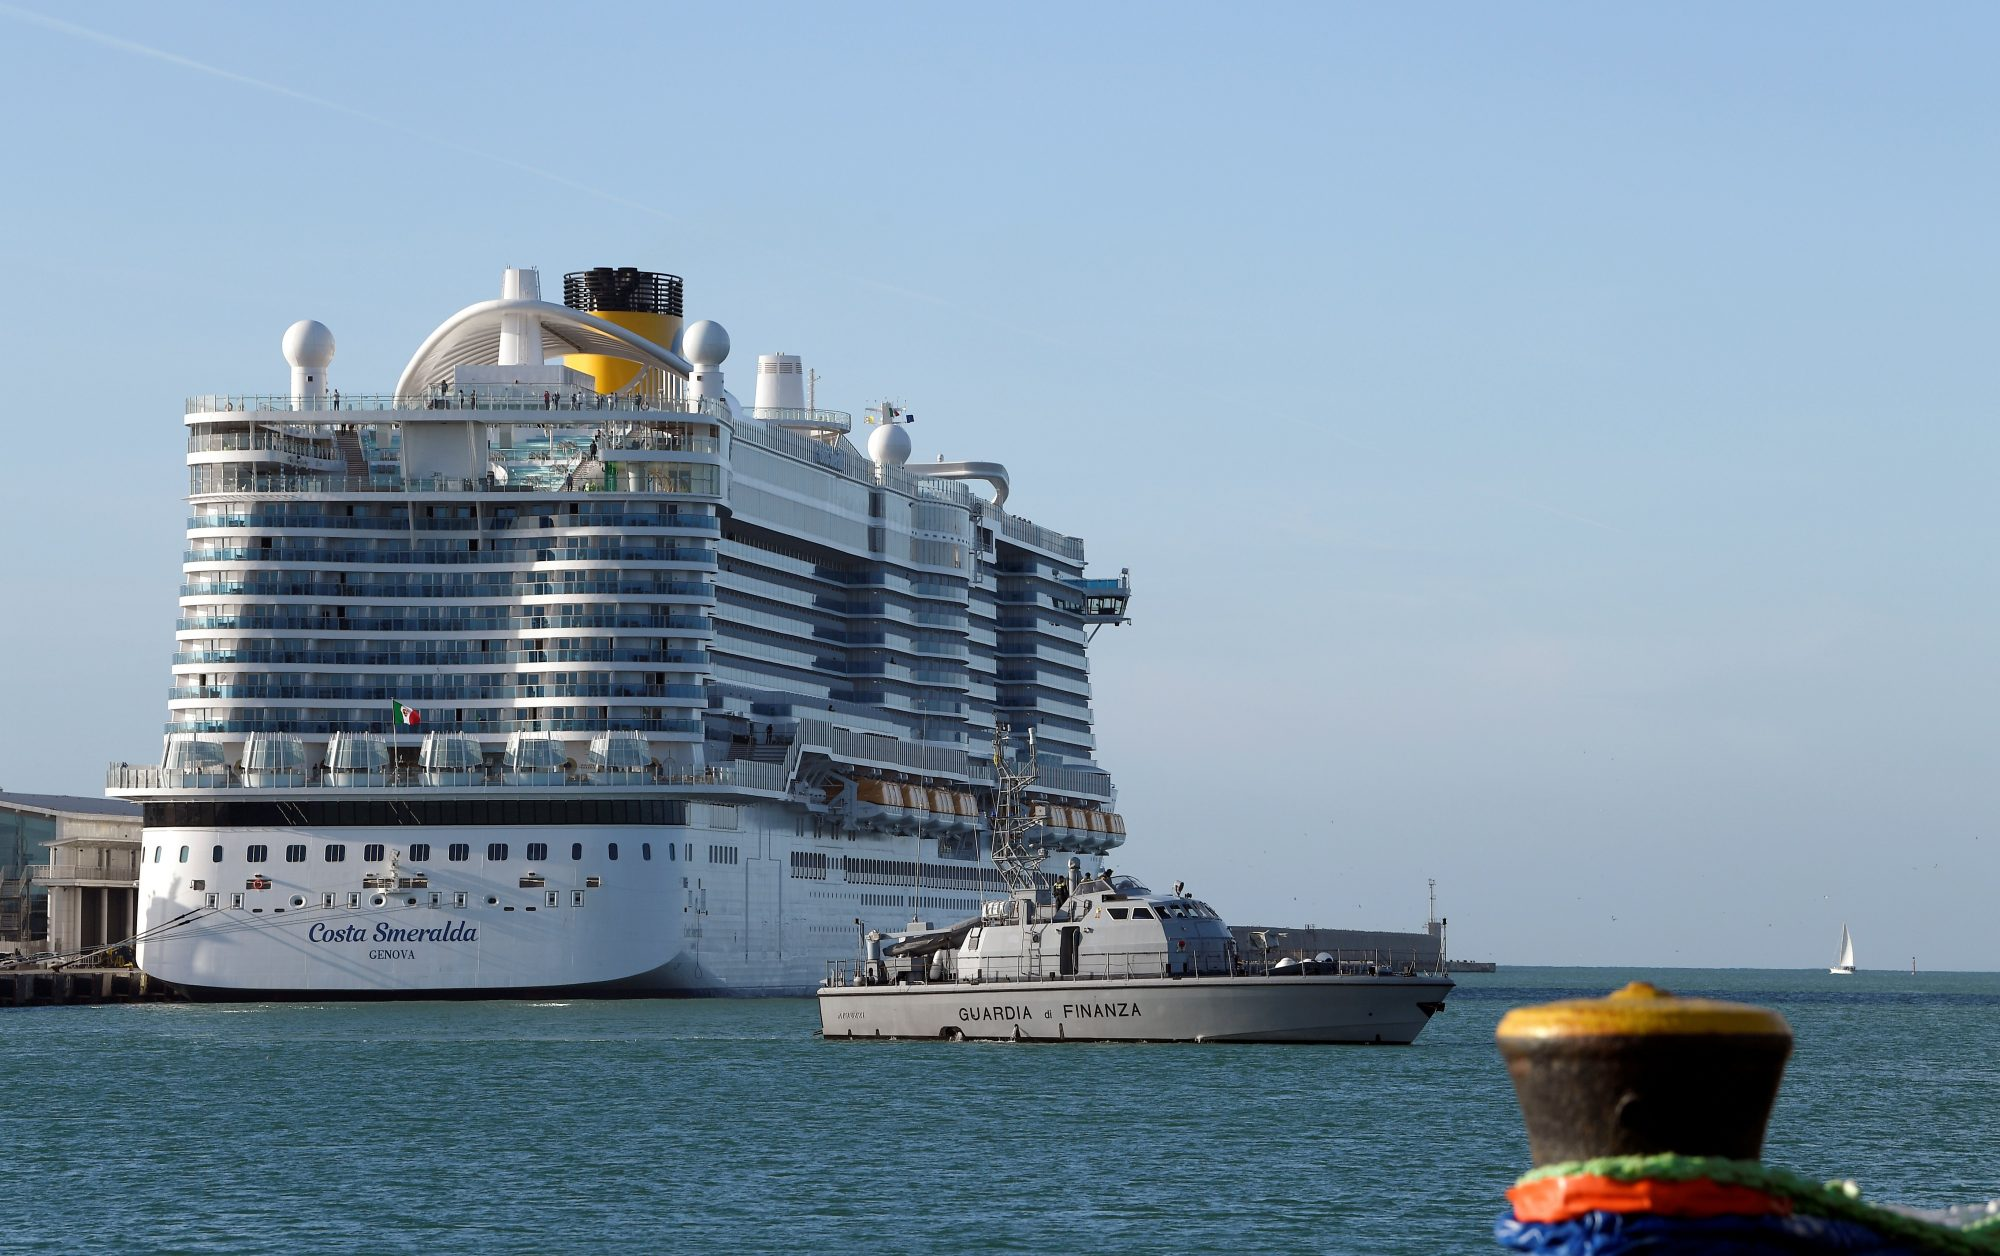 Costa Smeralda cruise ship - coronavirus